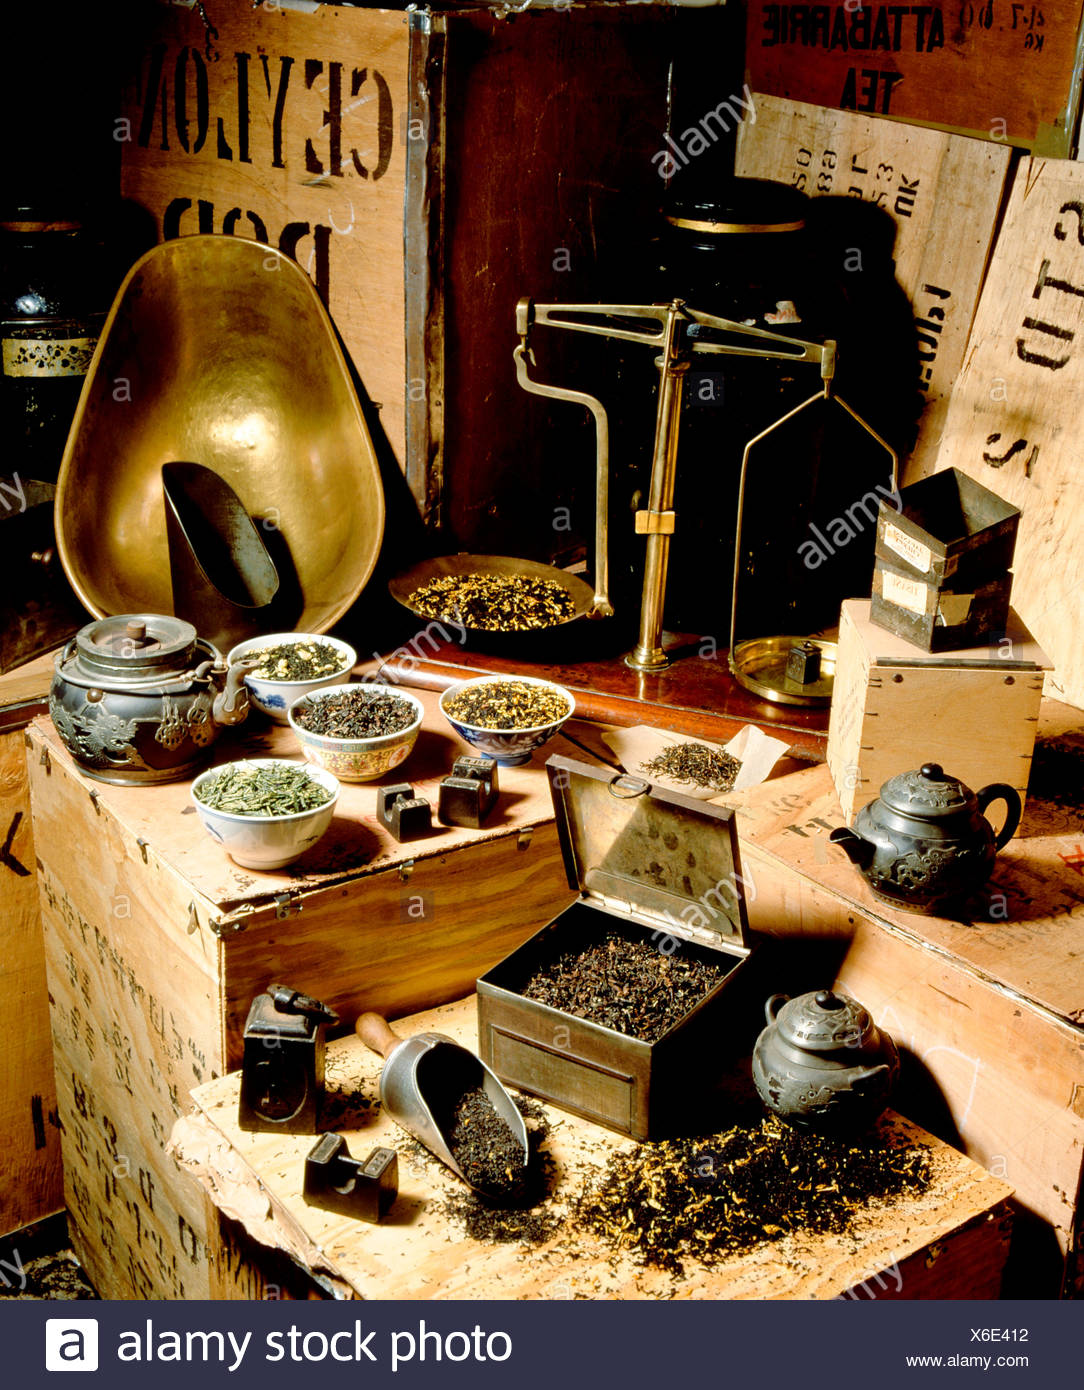 Still life with various tea leaves, tea boxes and teapots - Stock Image